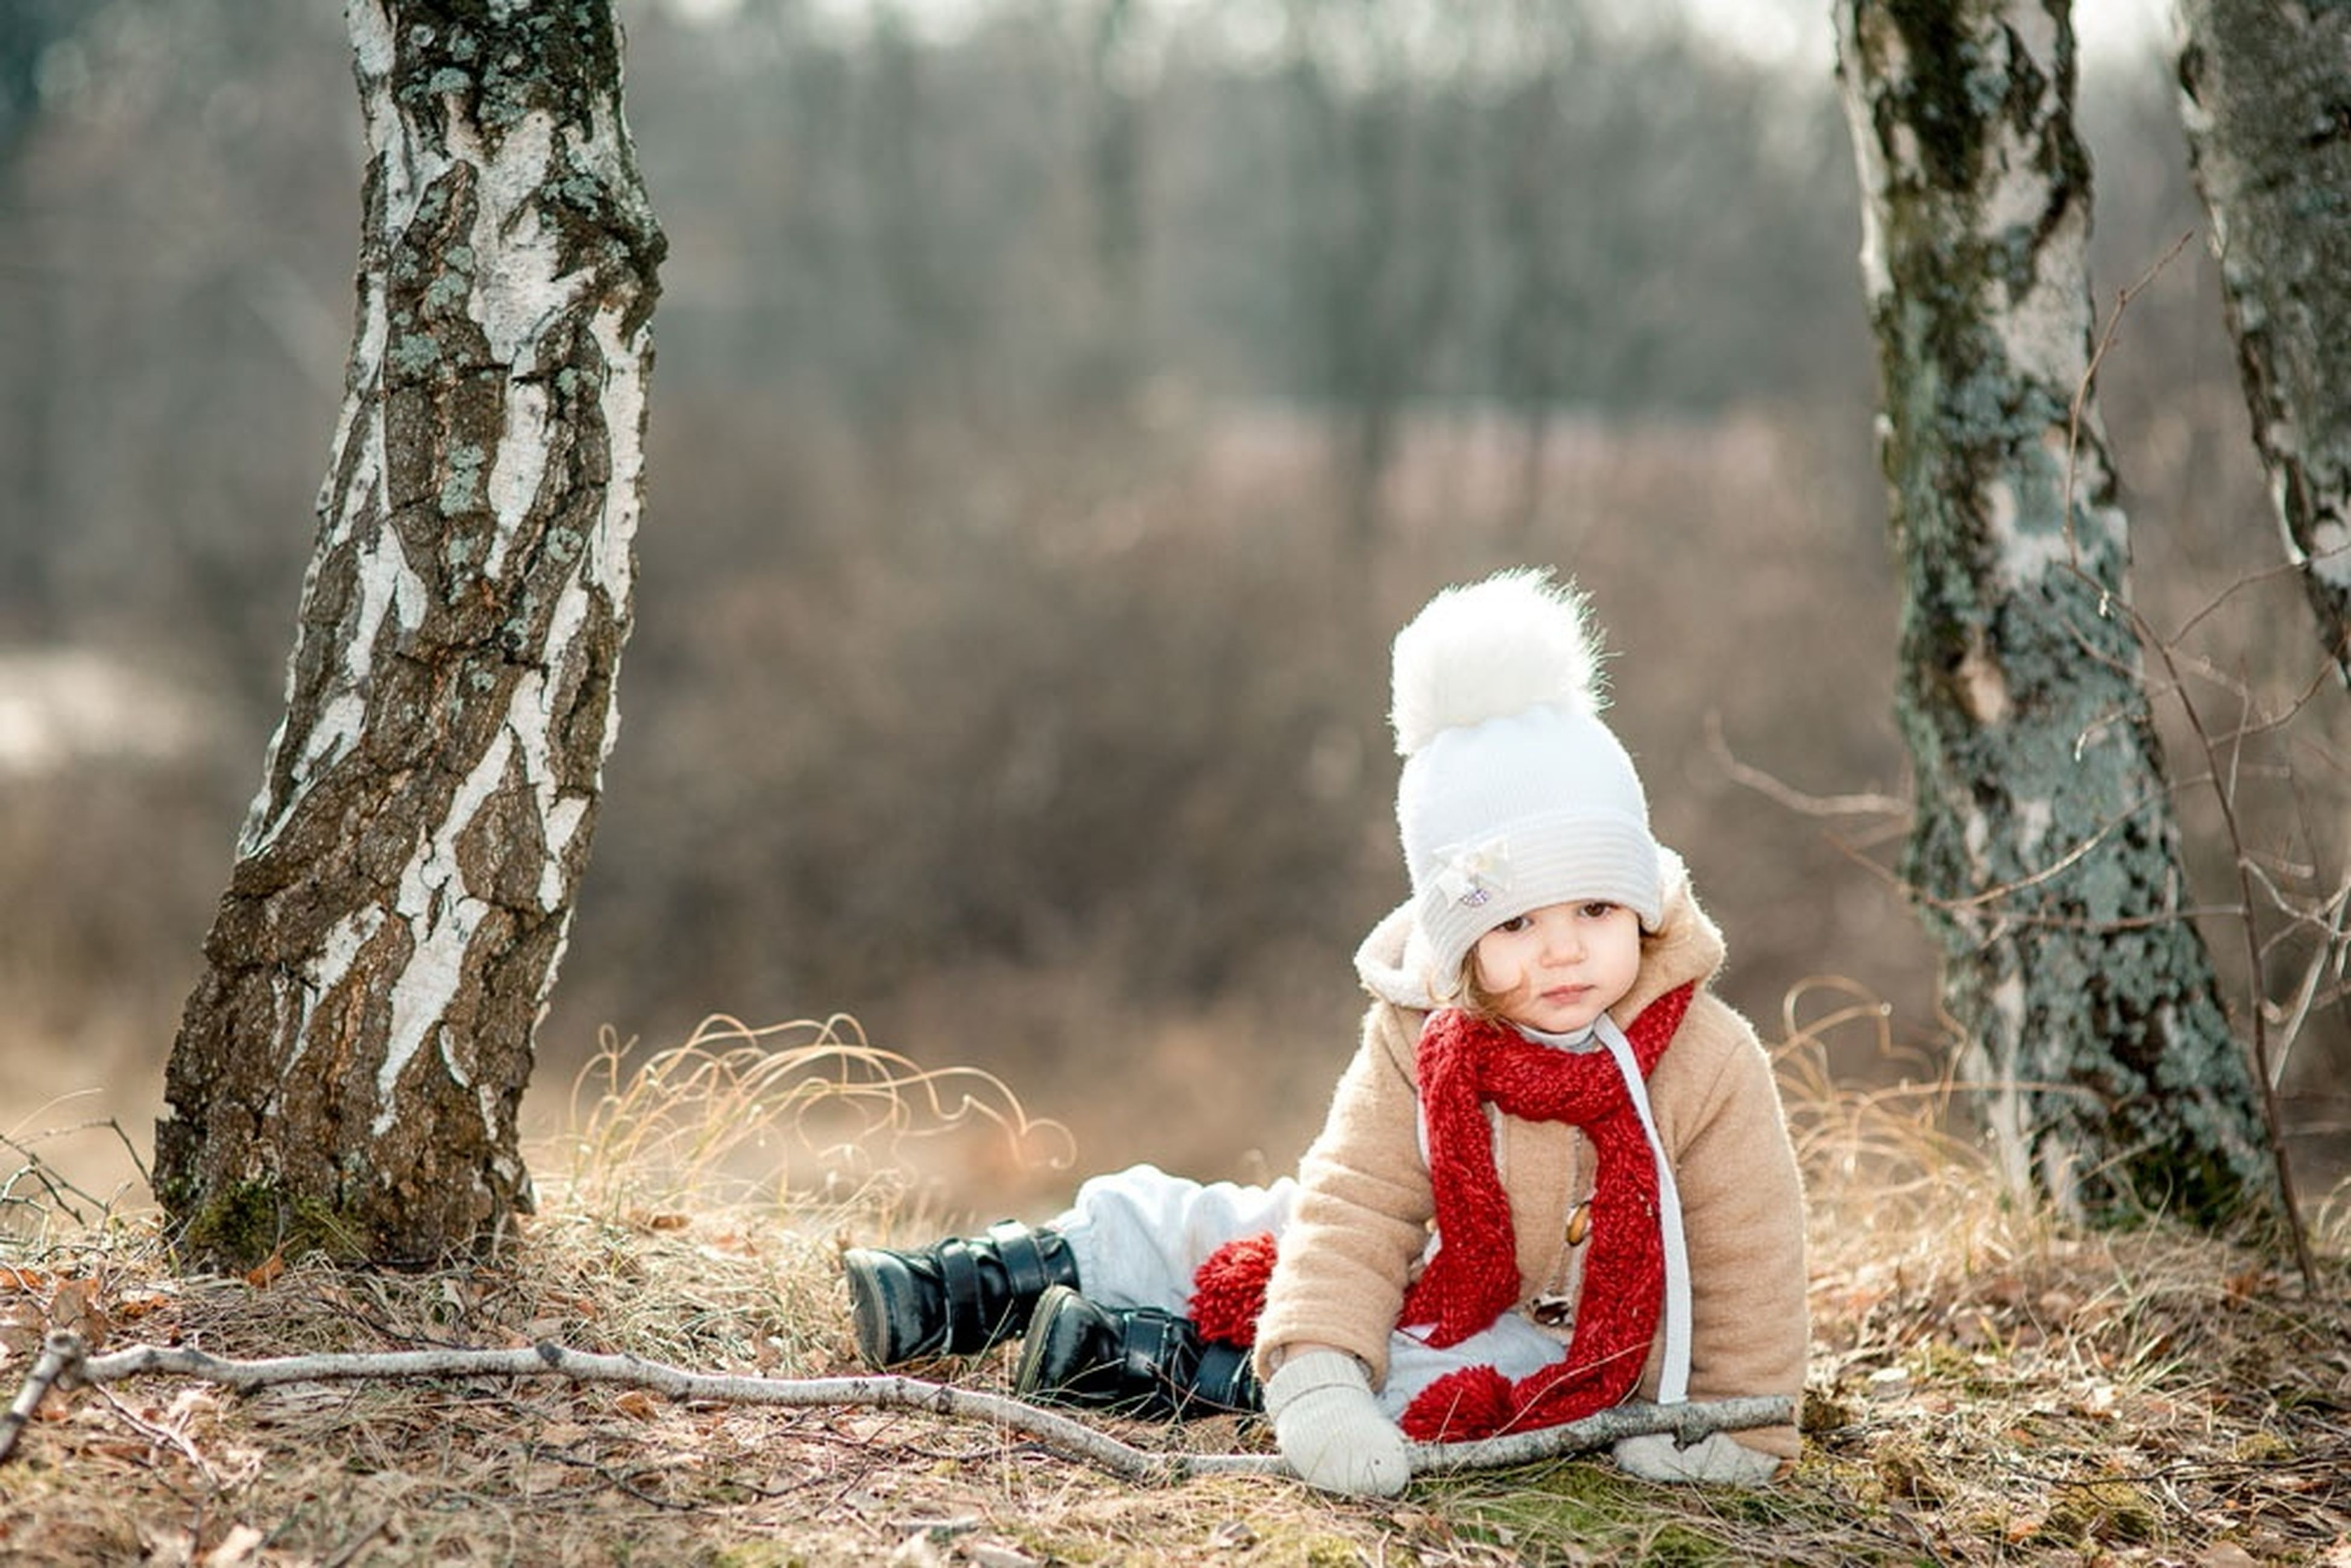 tree, tree trunk, focus on foreground, forest, wood - material, day, sitting, outdoors, childhood, nature, red, front view, full length, hat, rear view, lifestyles, leisure activity, woodland